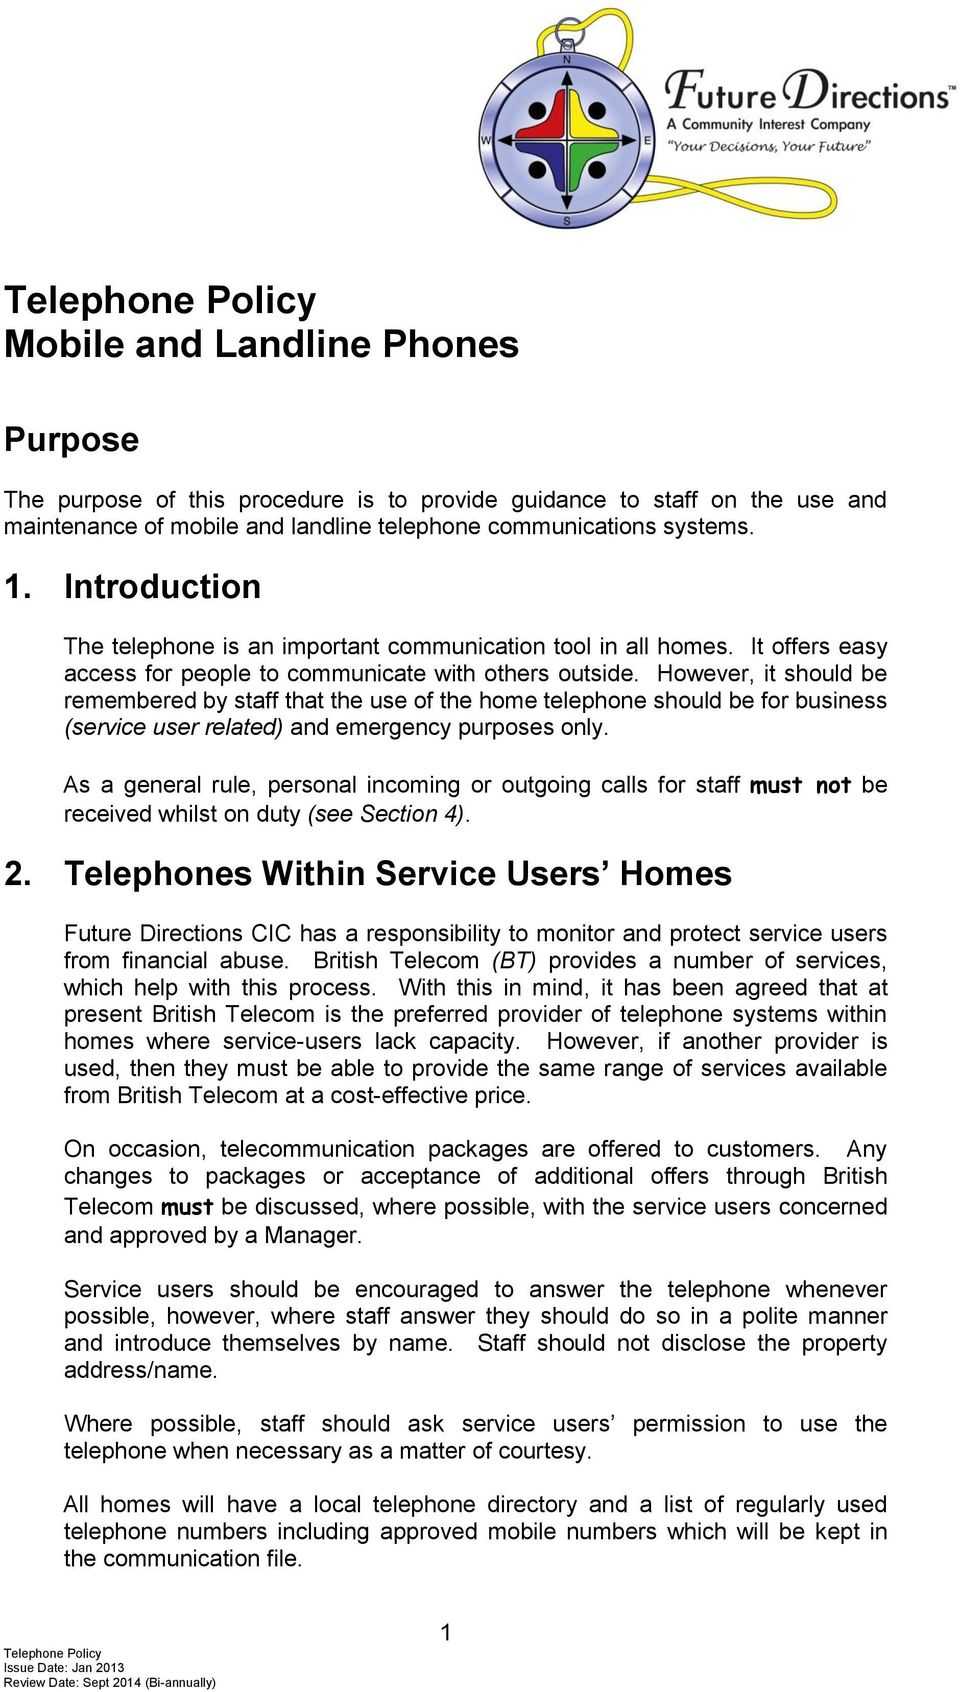 However, it should be remembered by staff that the use of the home telephone should be for business (service user related) and emergency purposes only.